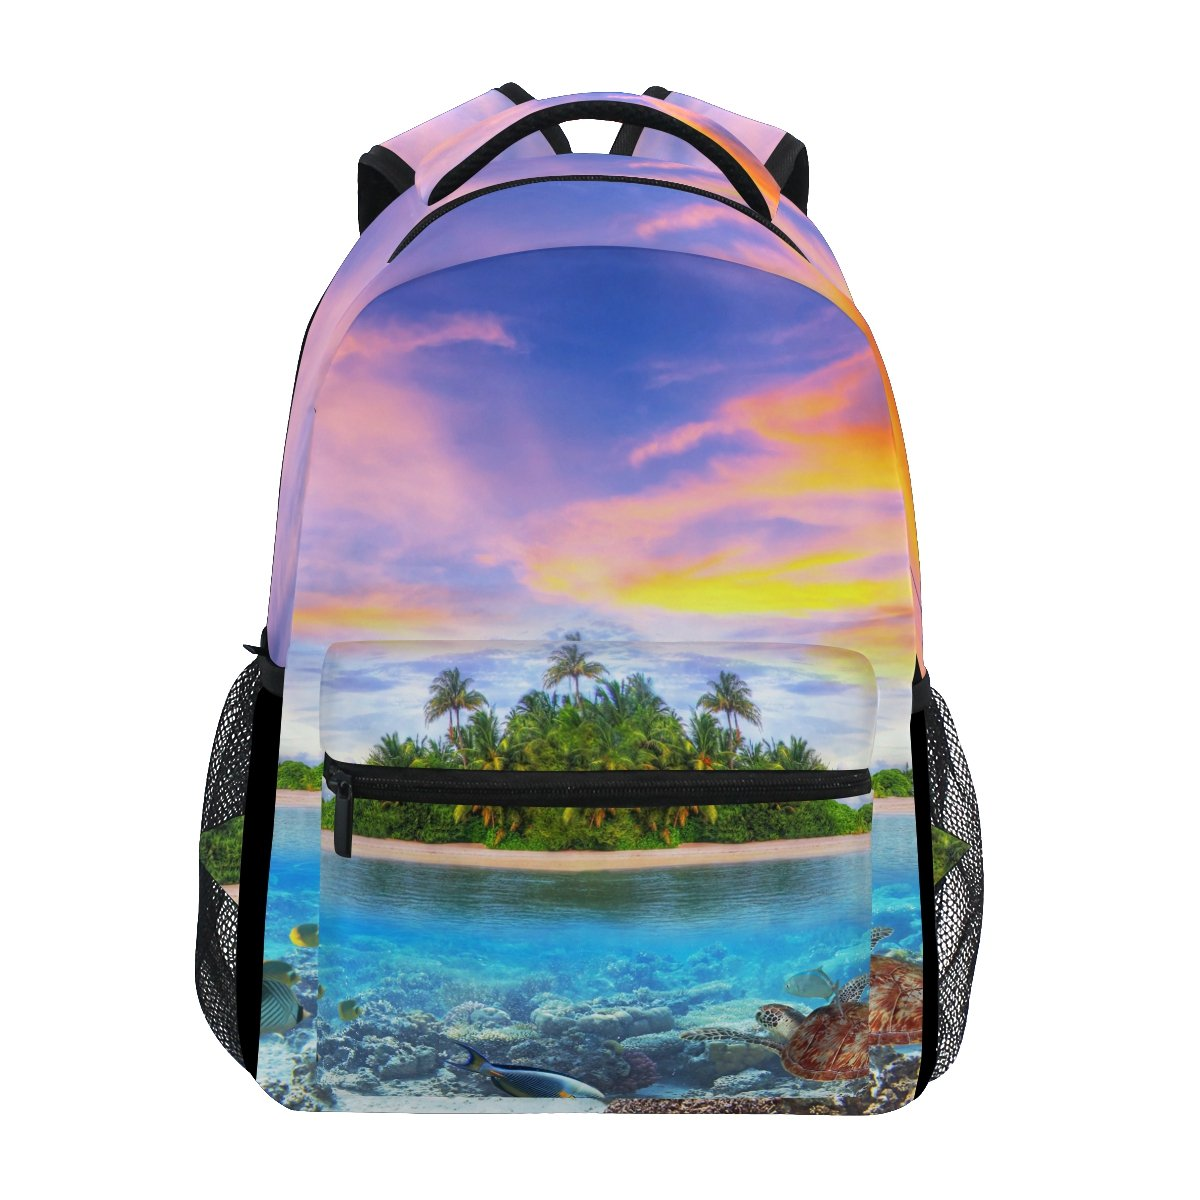 TropicalLife Summer Ocean Sea Beach Theme Backpacks School Bookbag Shoulder Backpack Hiking Travel Daypack Casual Bags